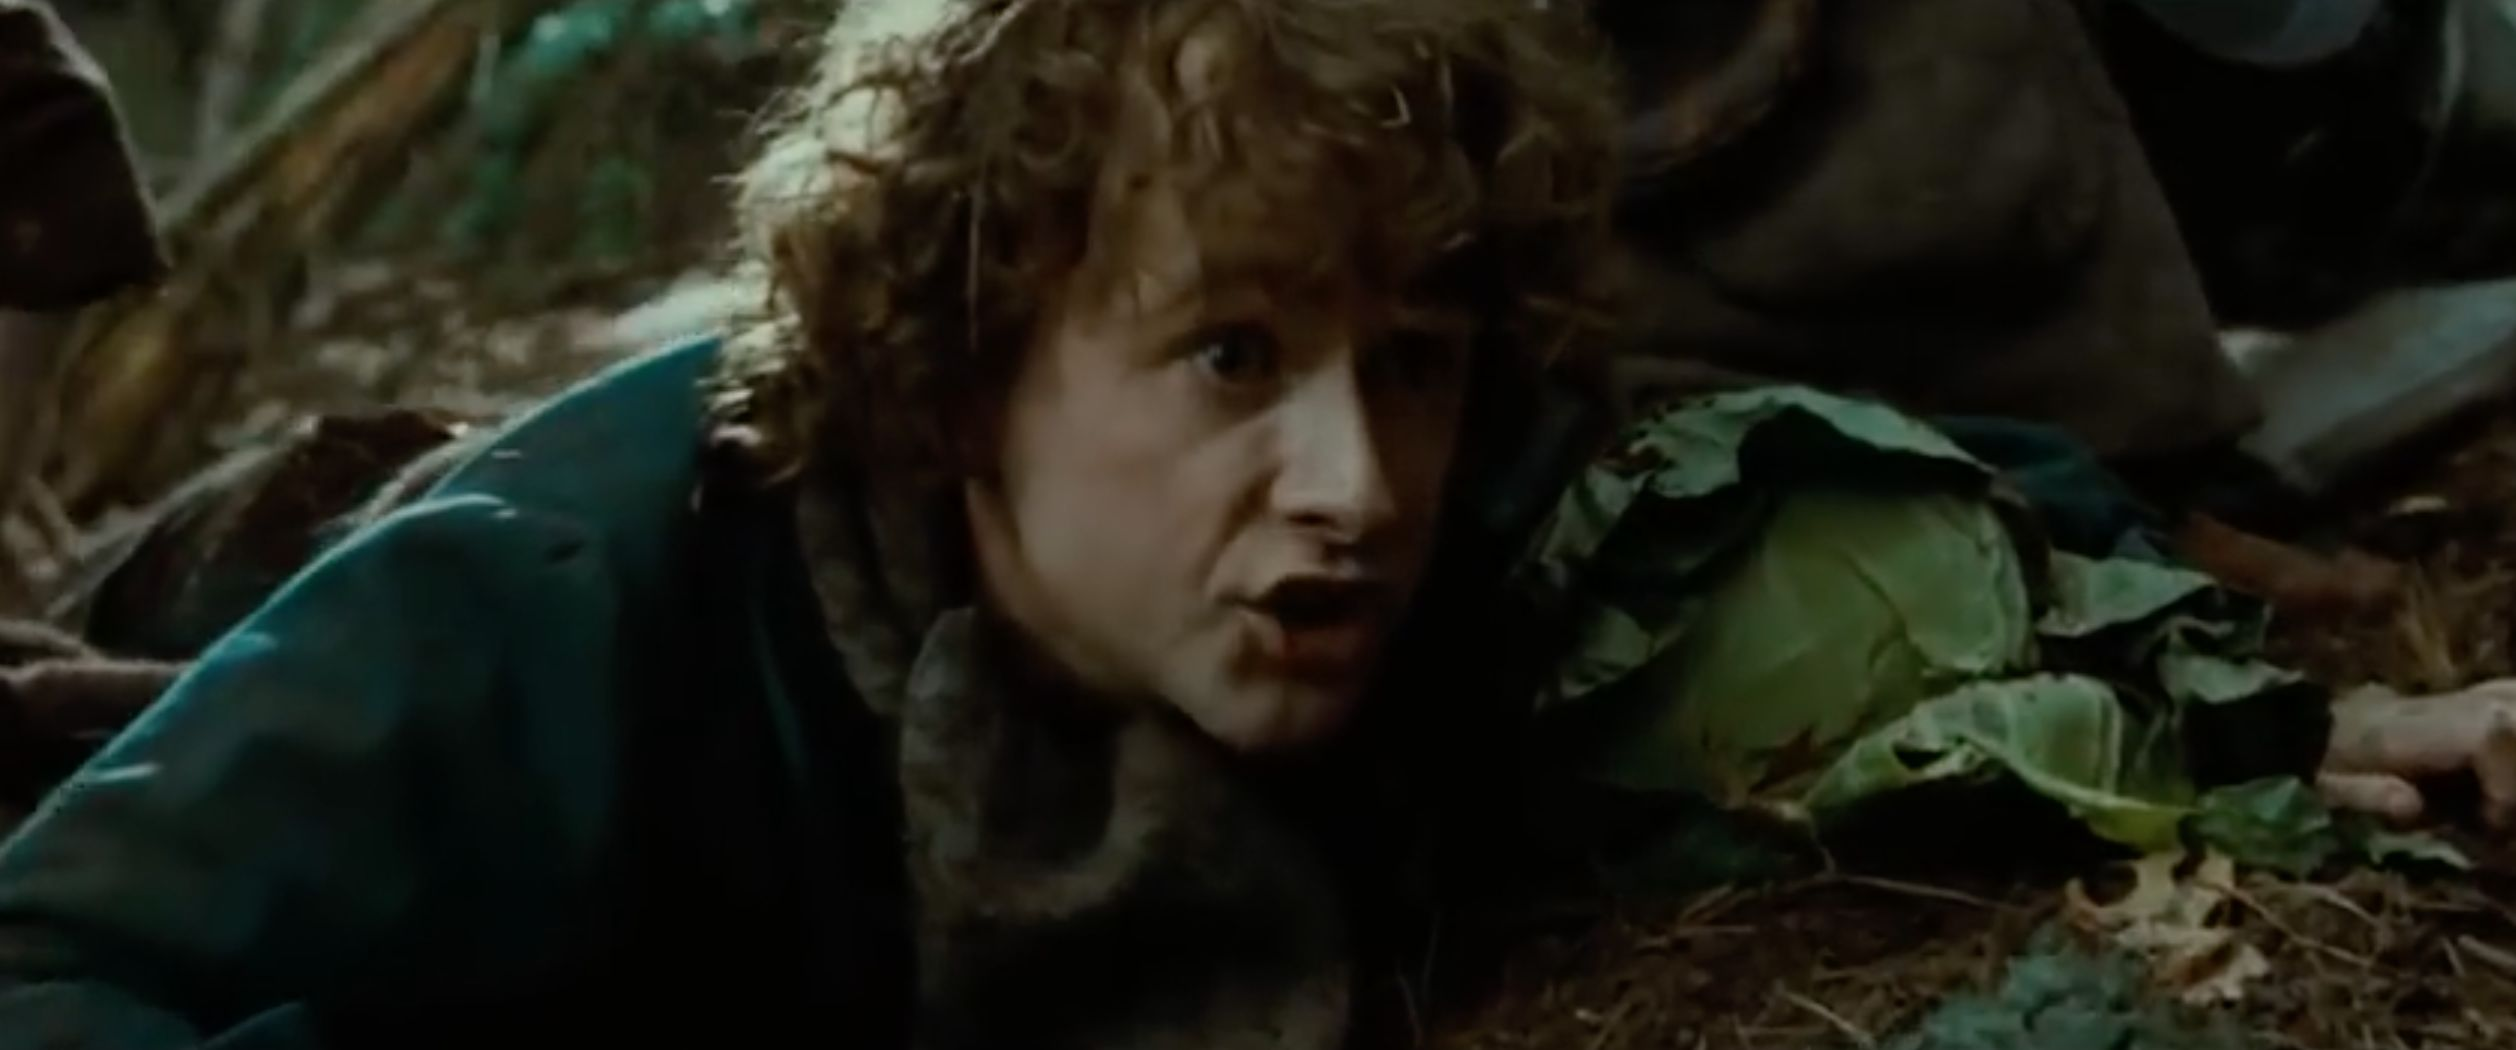 Samwise Gamgee And Peregrin Took Had A Merry Lotr Reunion At Nycc 2019